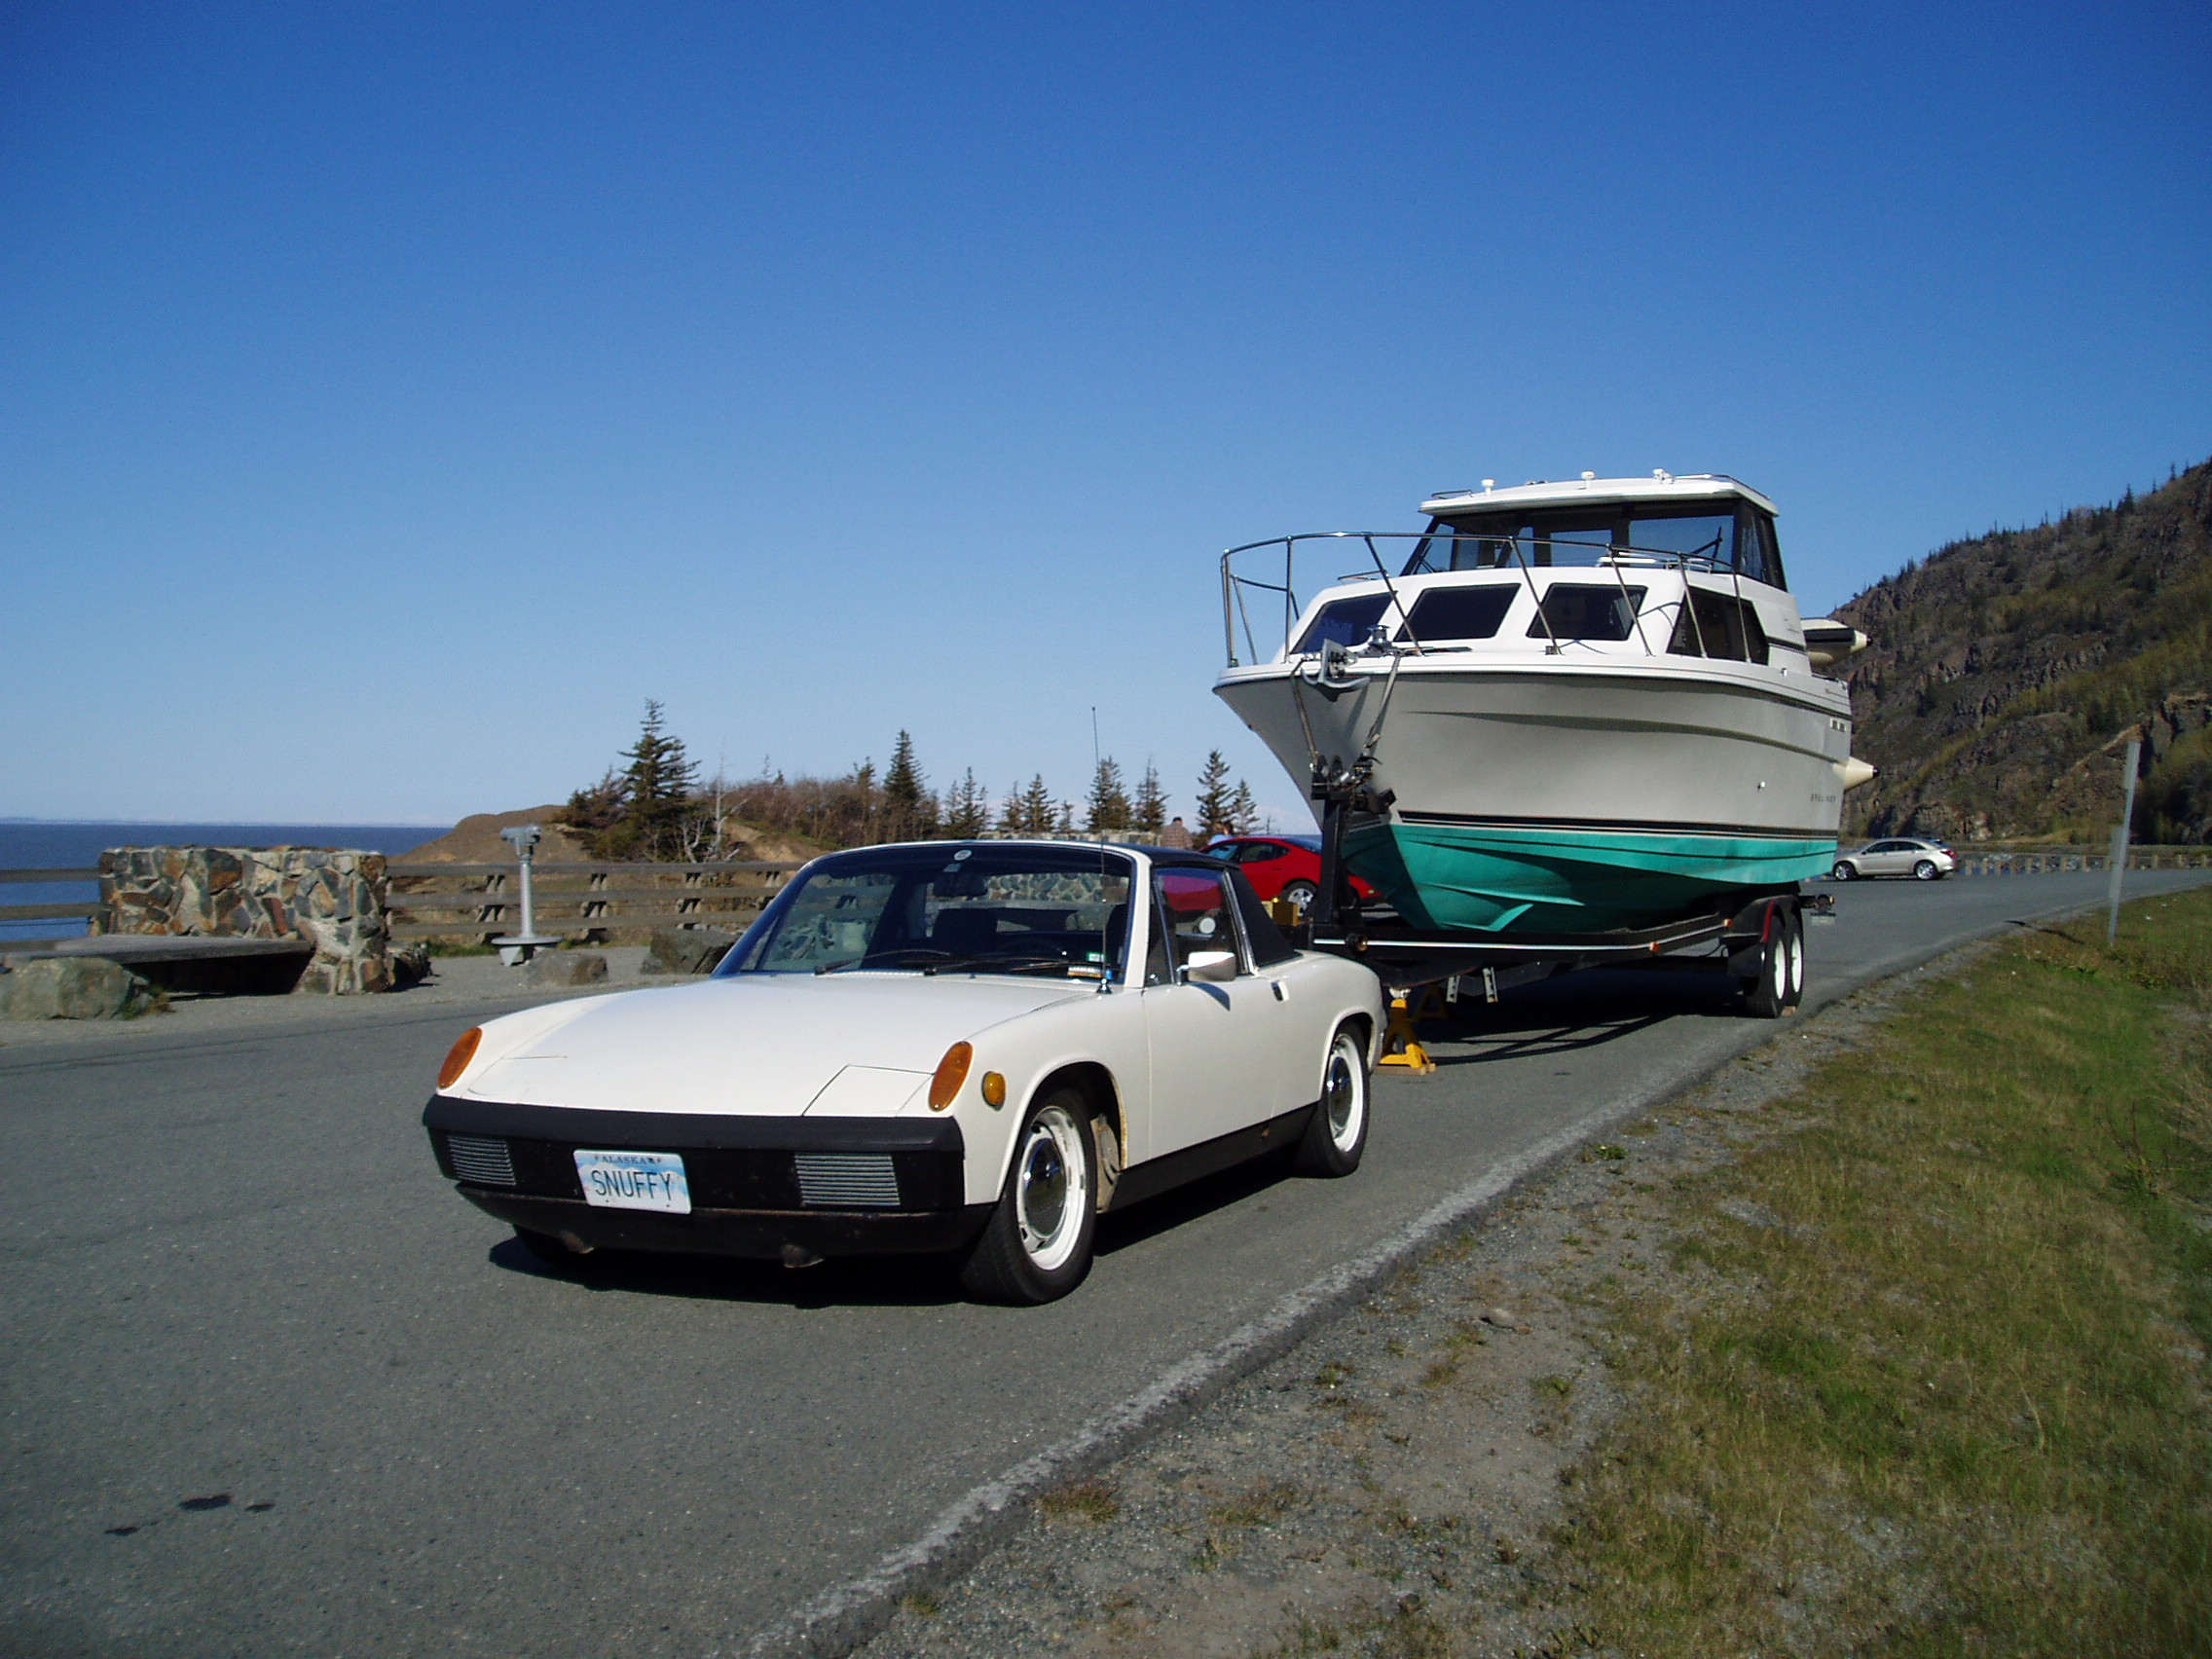 2007 road trip to Seward - Snuffy towing a boat!!